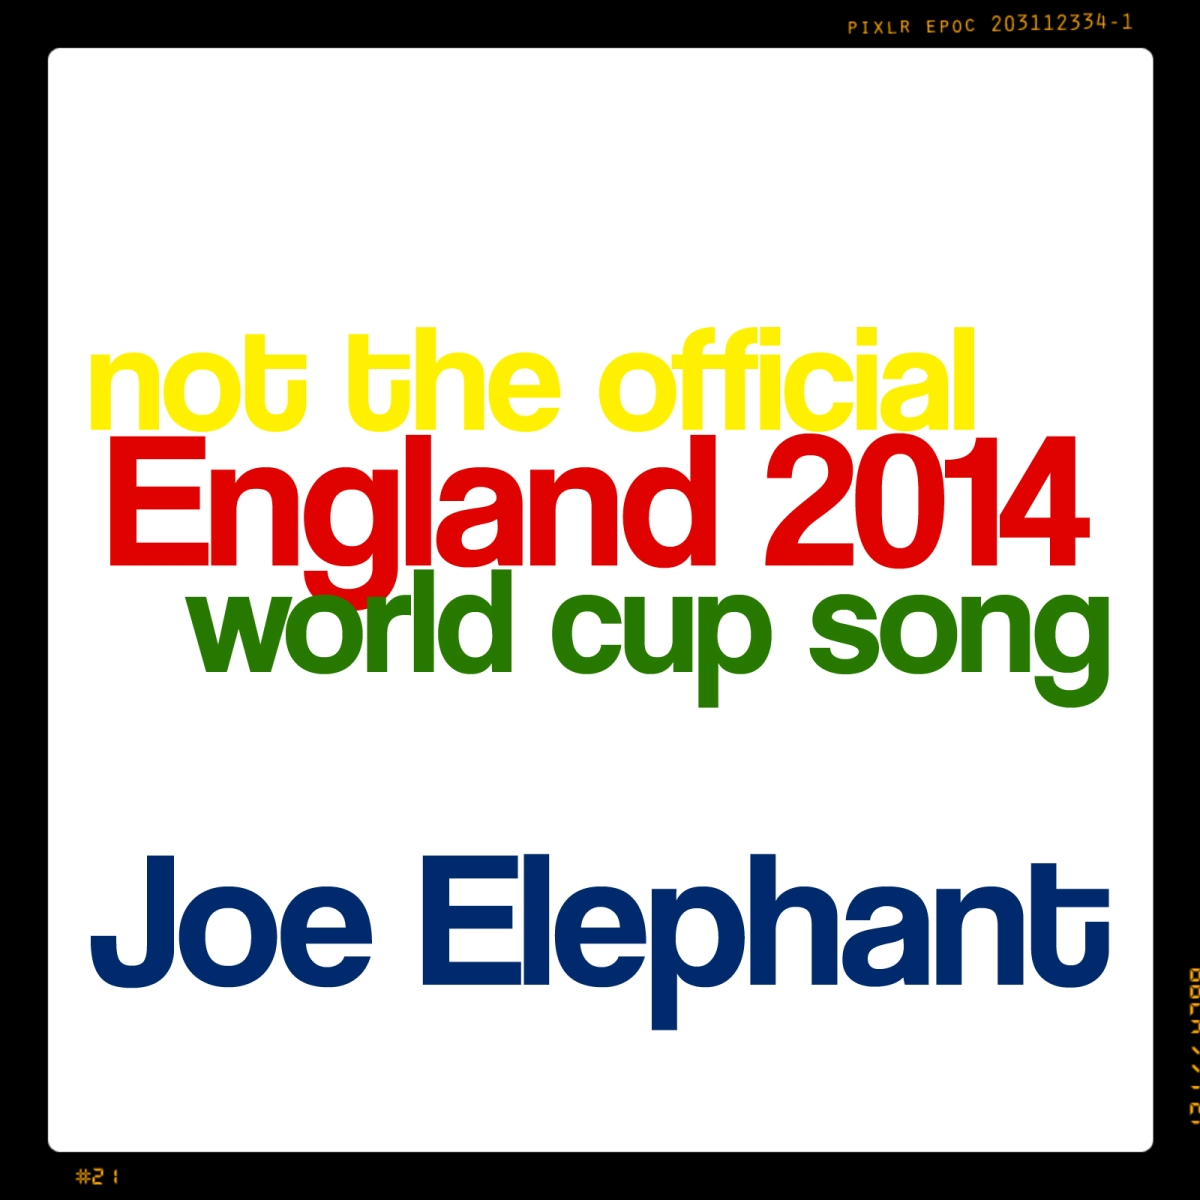 Not the official England 2014 World Cup song by Joe Elephant